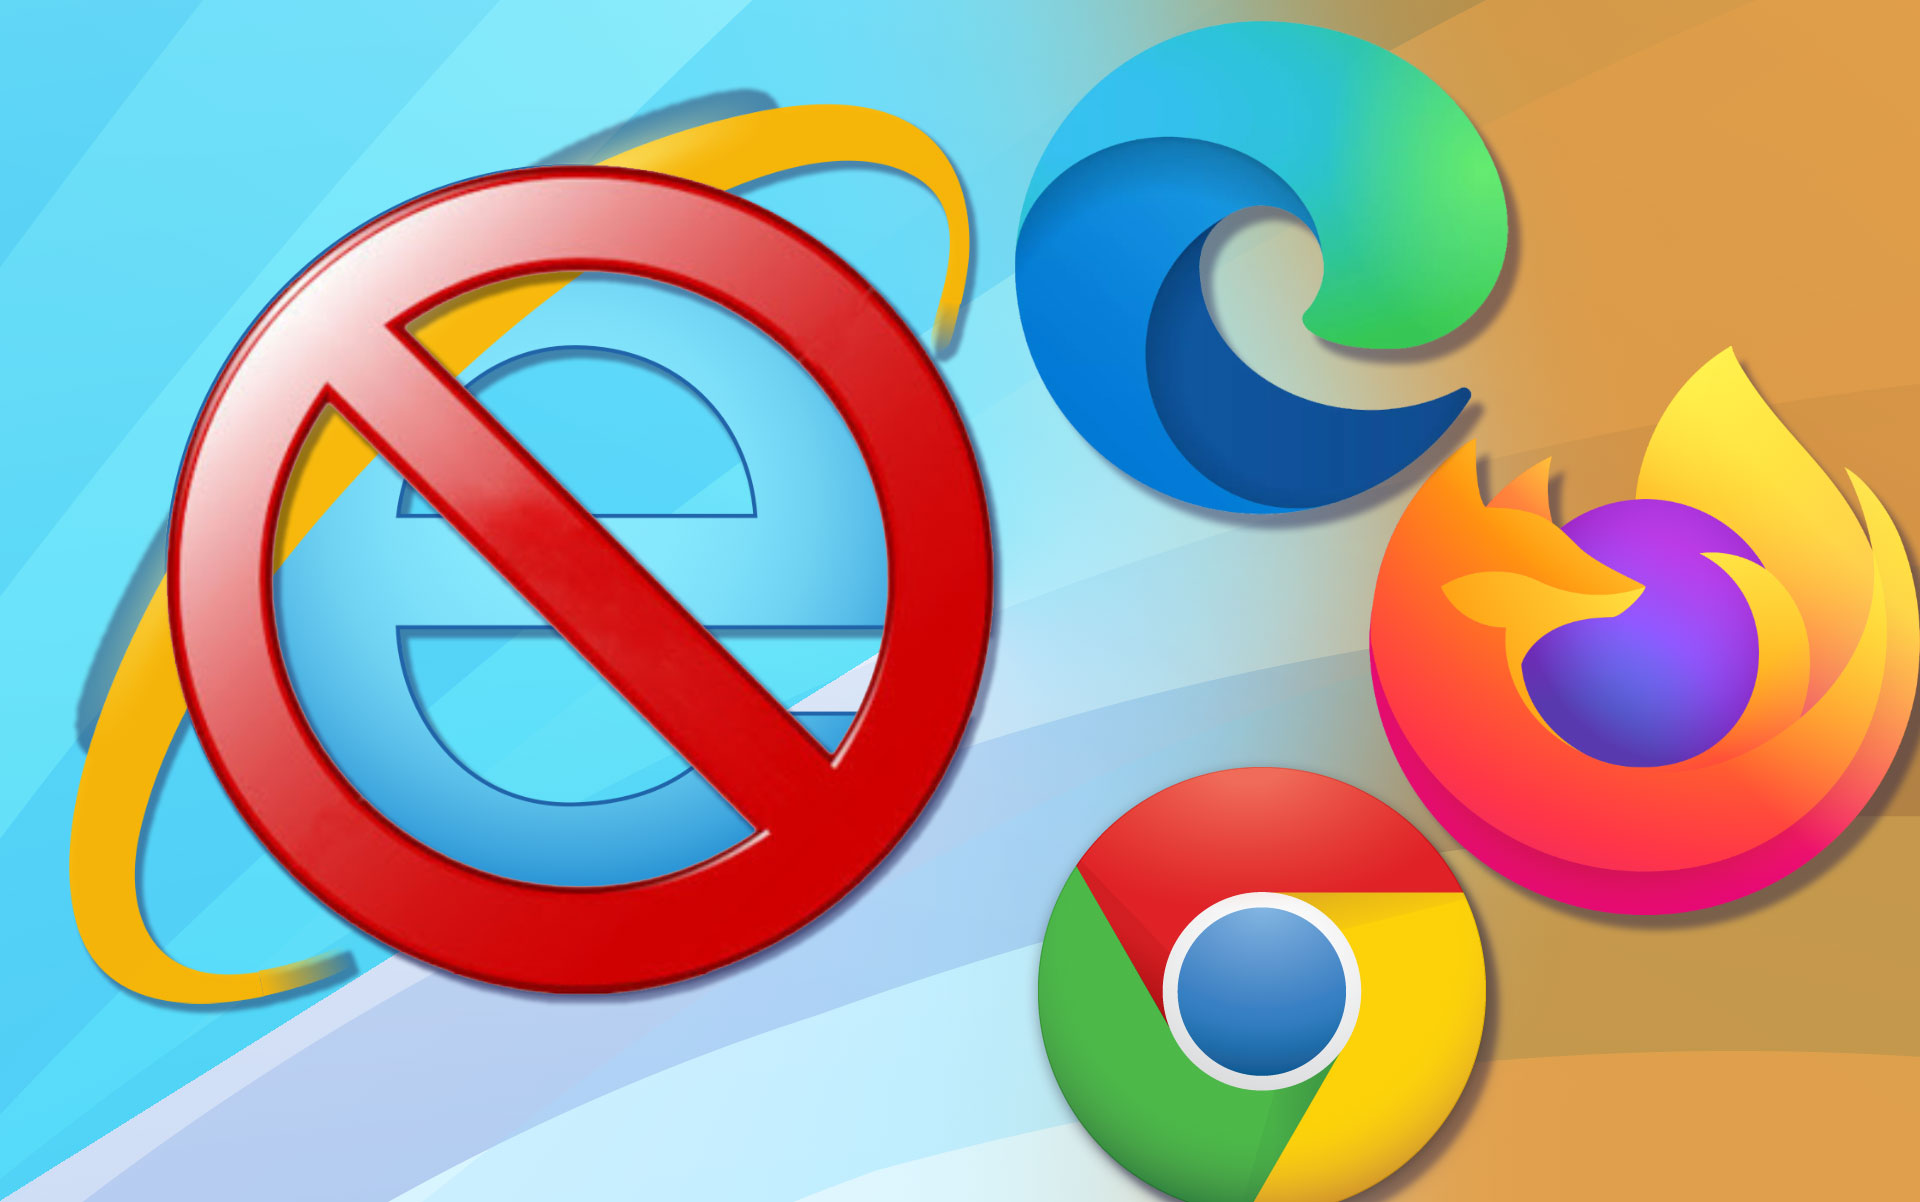 A Safer Way to Play Games: Why You Should Leave Internet ...